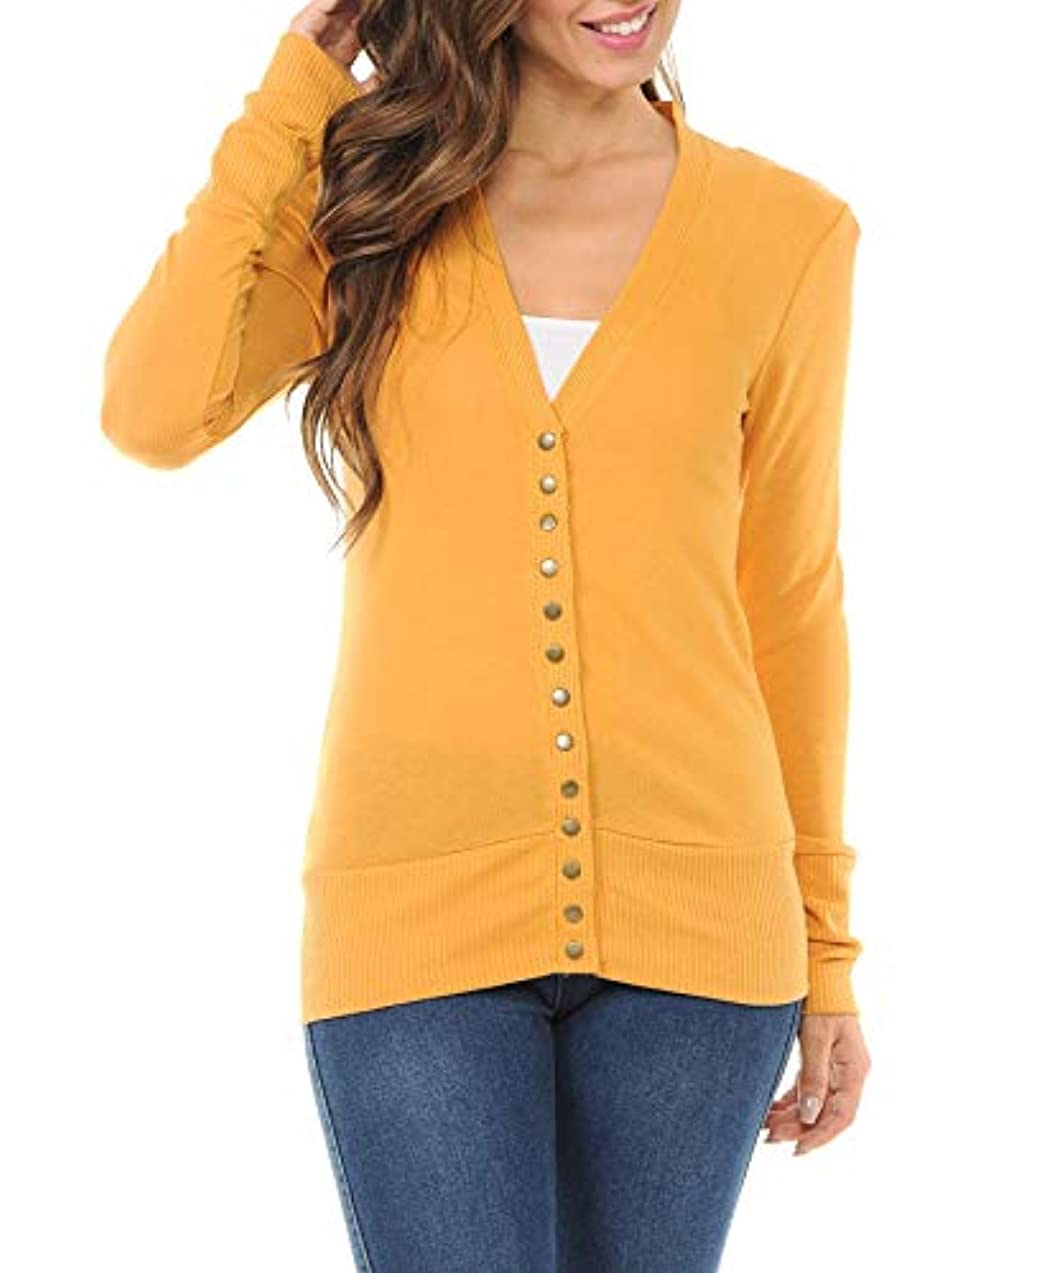 ClothingAve. Women's Snap Button Sweater Cardigan with Ribbed Detail